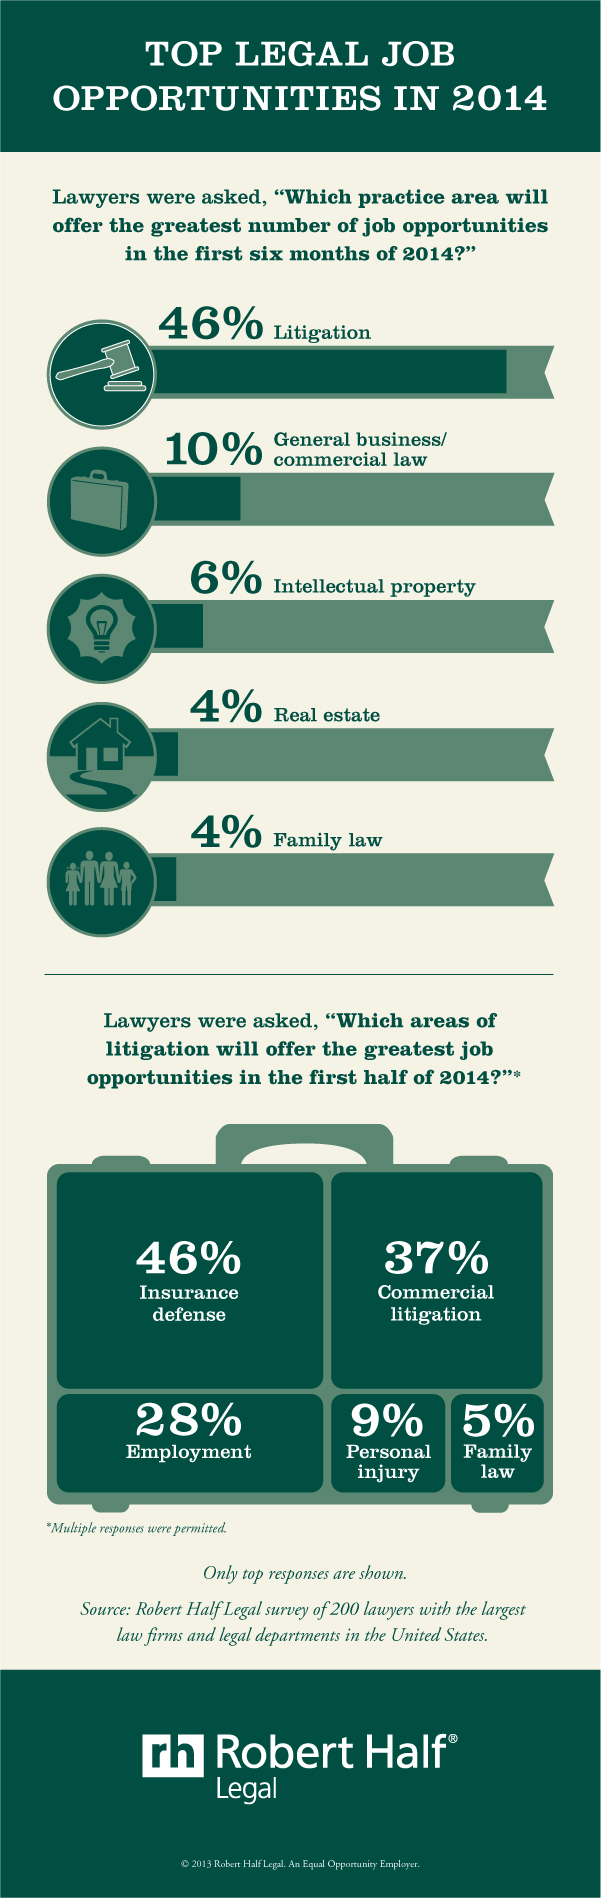 """Top legal job opportunities in 2014"" от roberthalf.com"